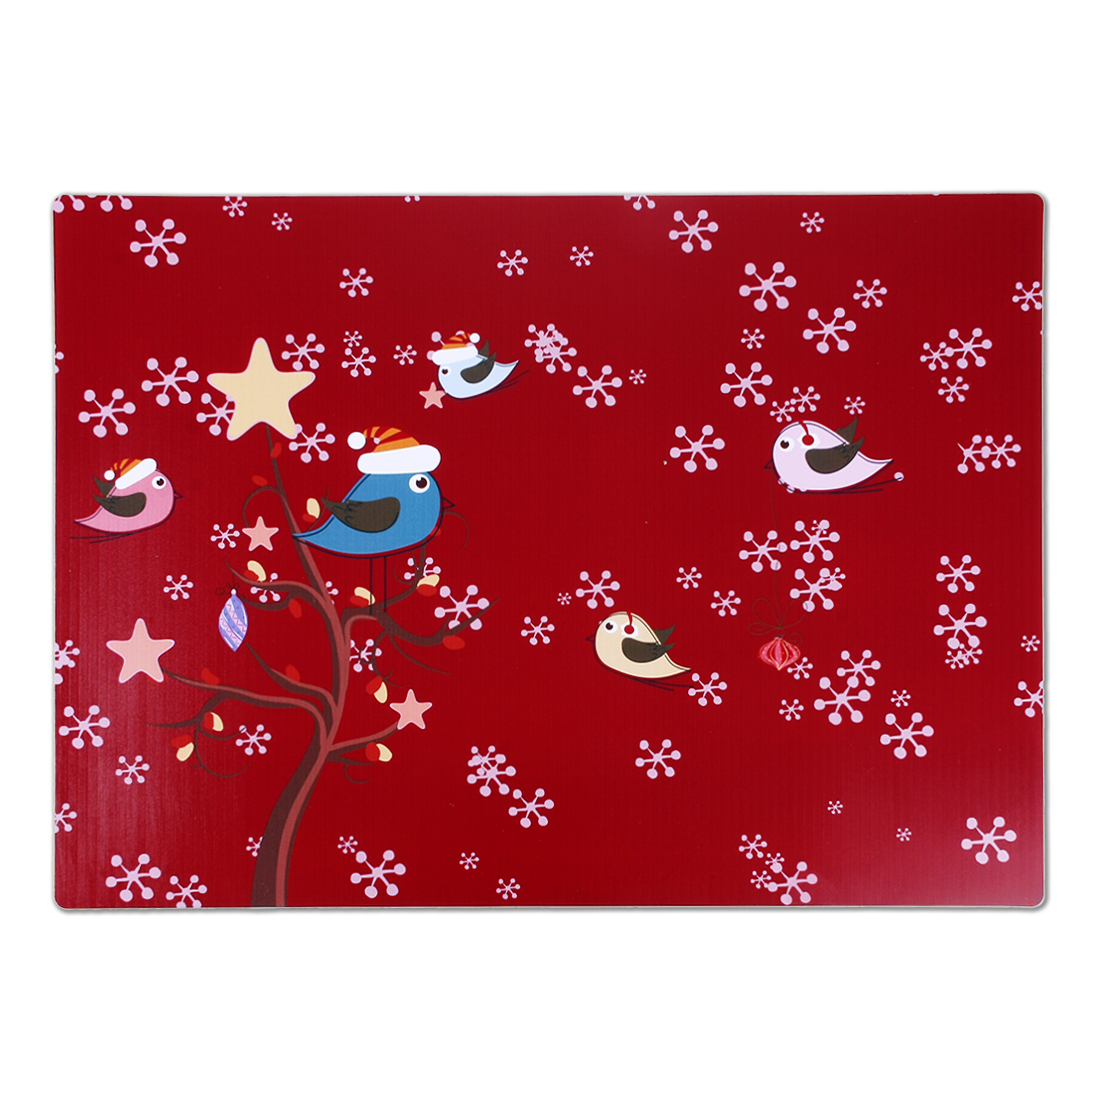 Snowflakes Bird Print Water Repellent Heat Insulating Dinner Table Mat Placemat